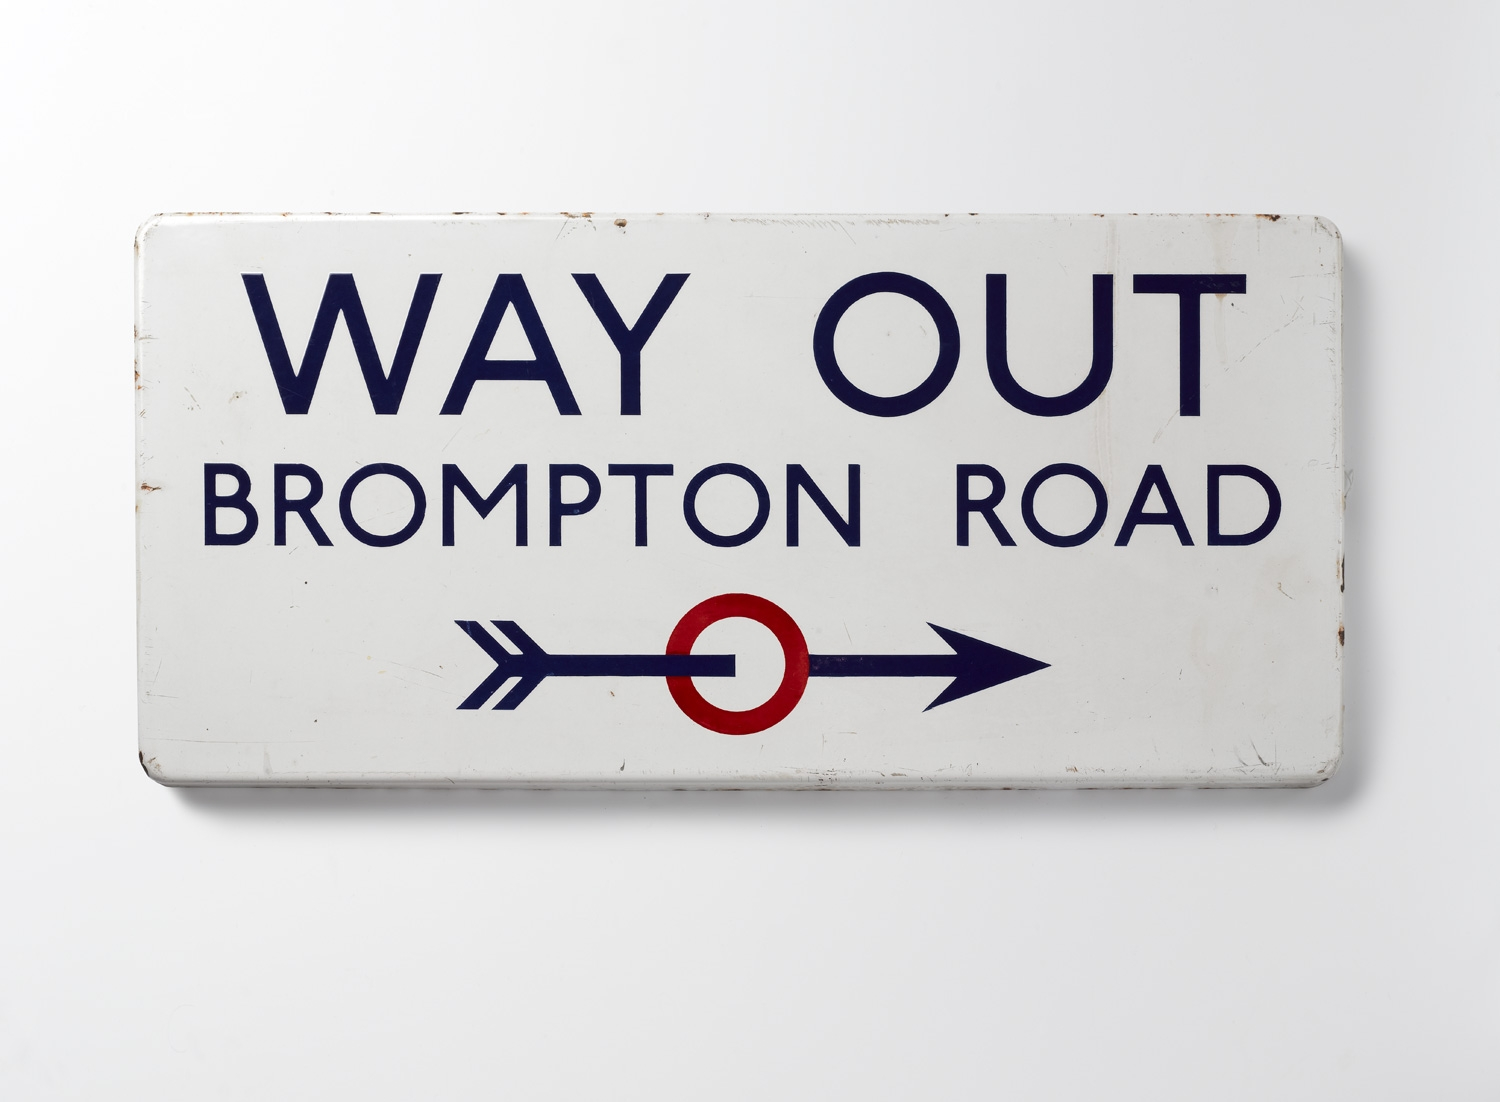 edward-johnstons-way-out_-brompton-road_-1916_-dmac_.jpg